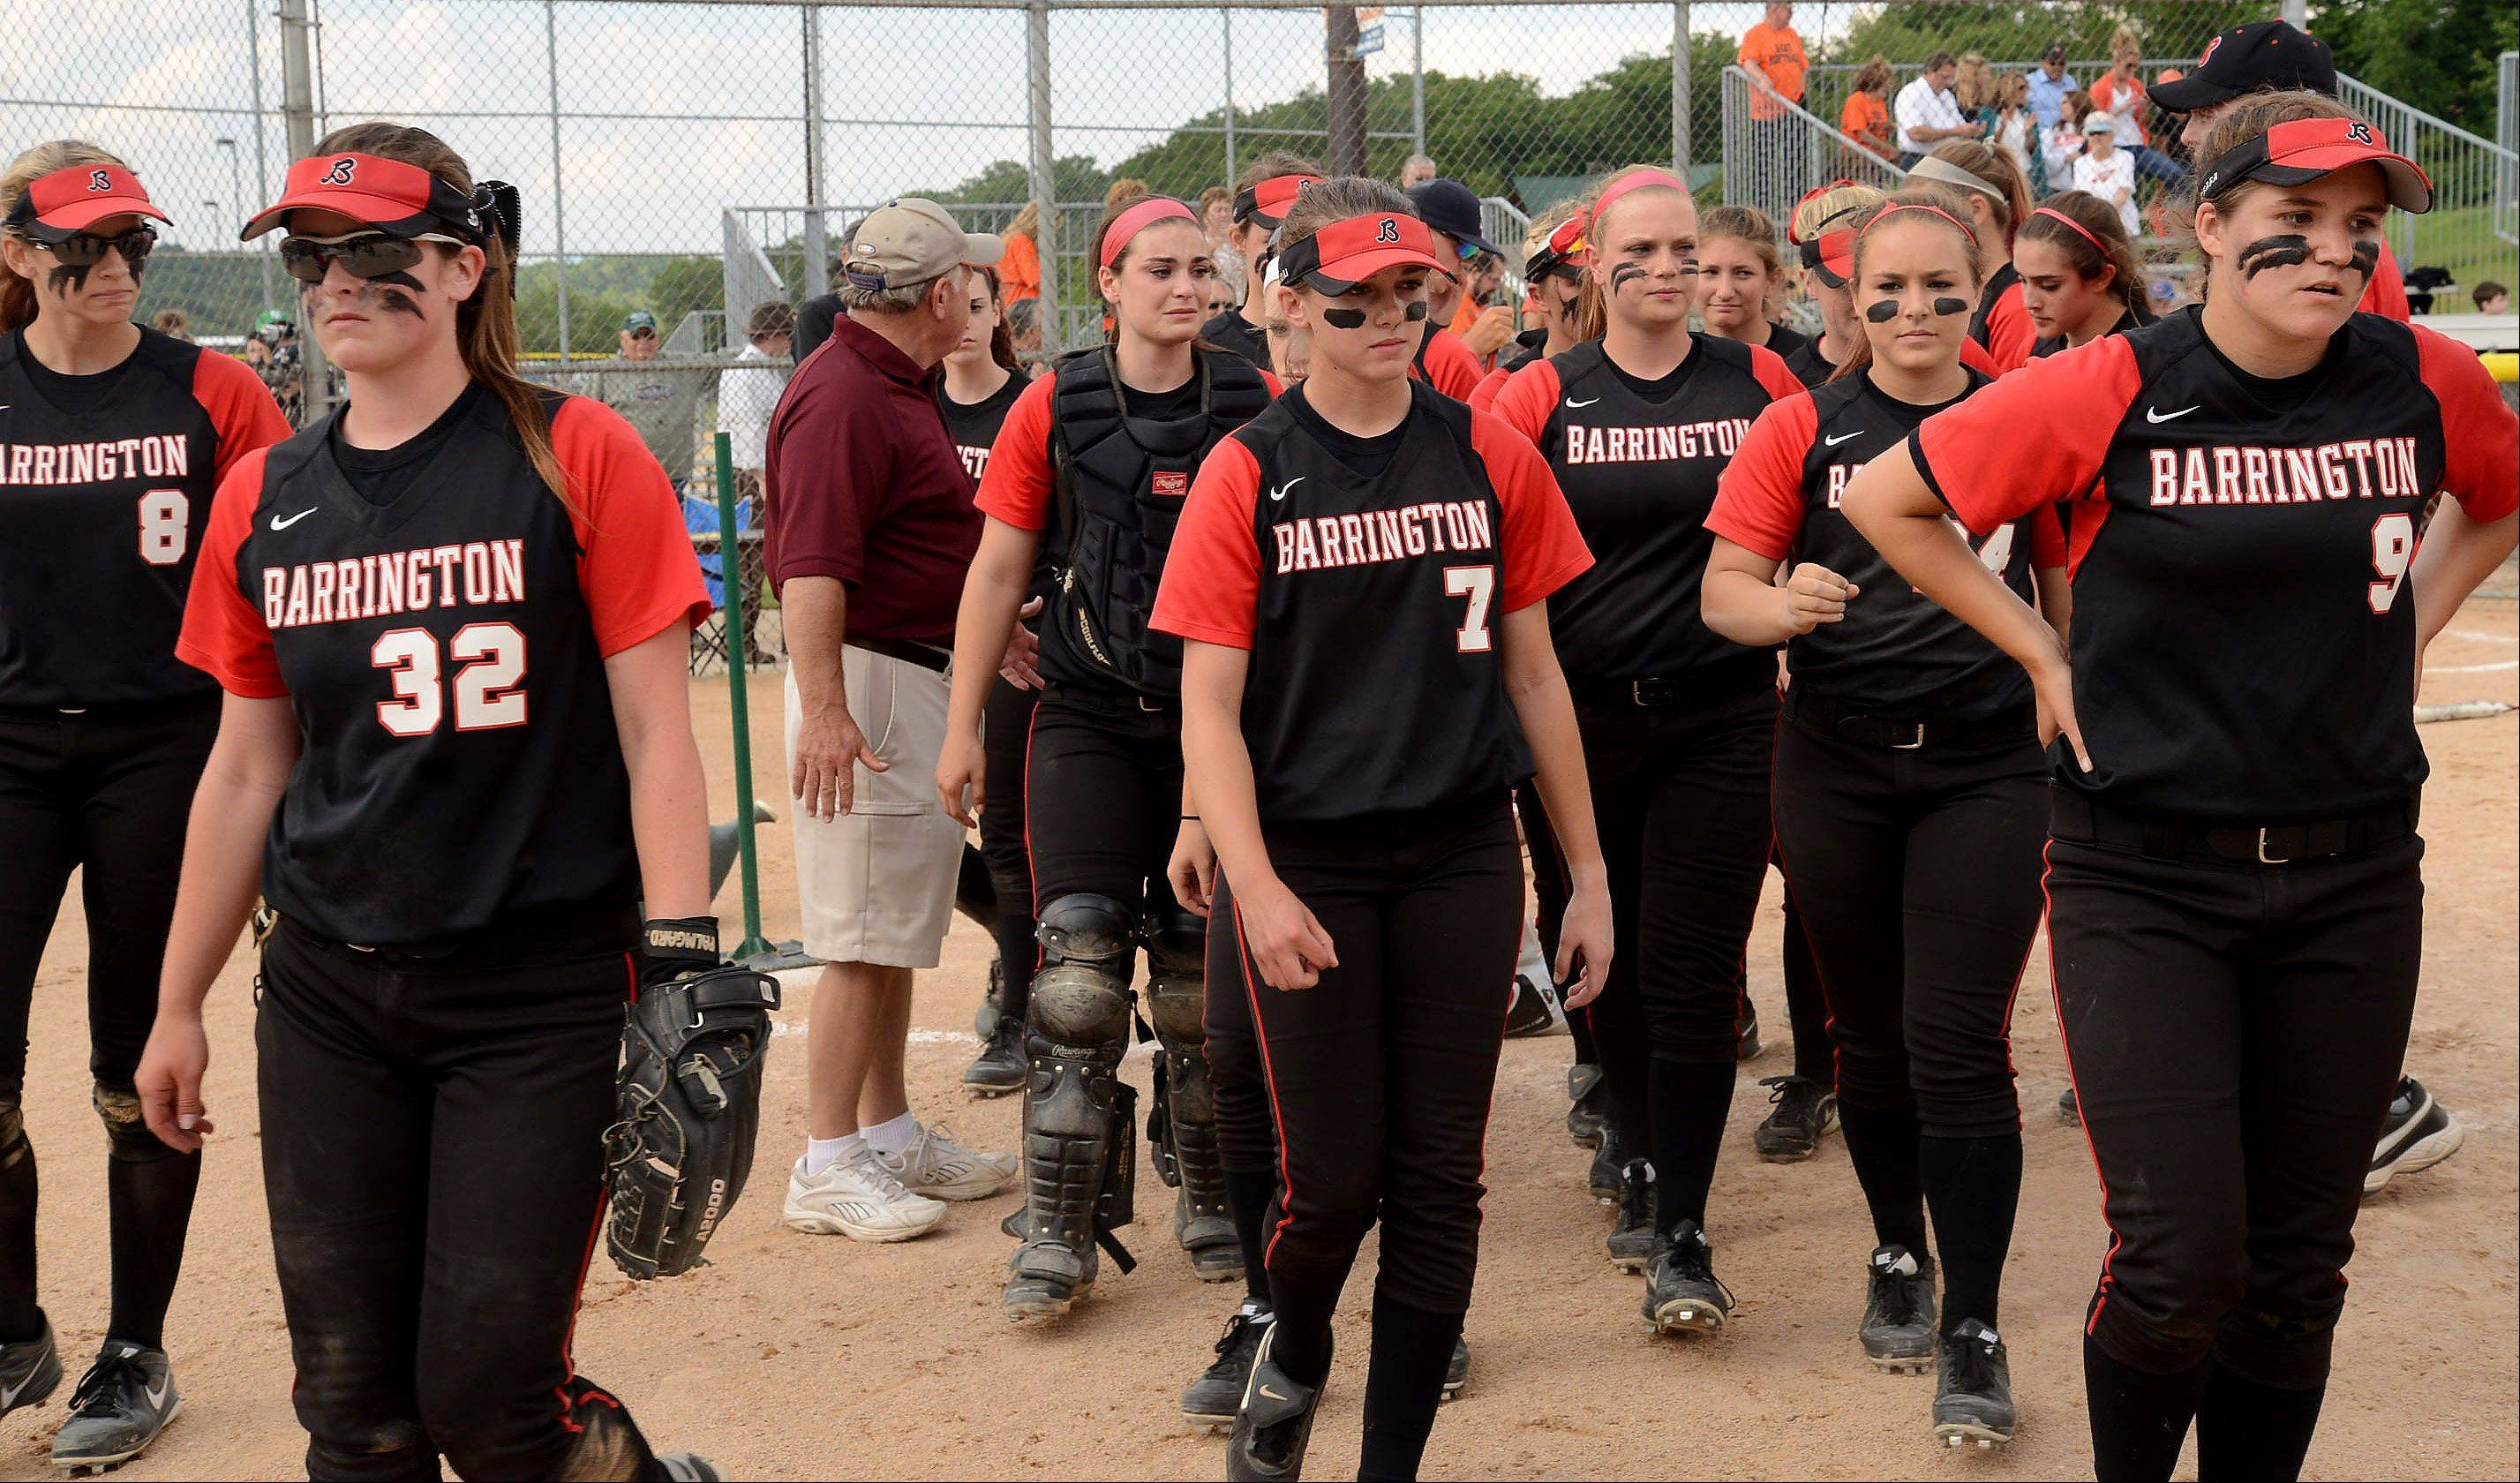 A dejected Barrington team leaves the field after falling short against St. Charles East in the Class 4A state semifinals.